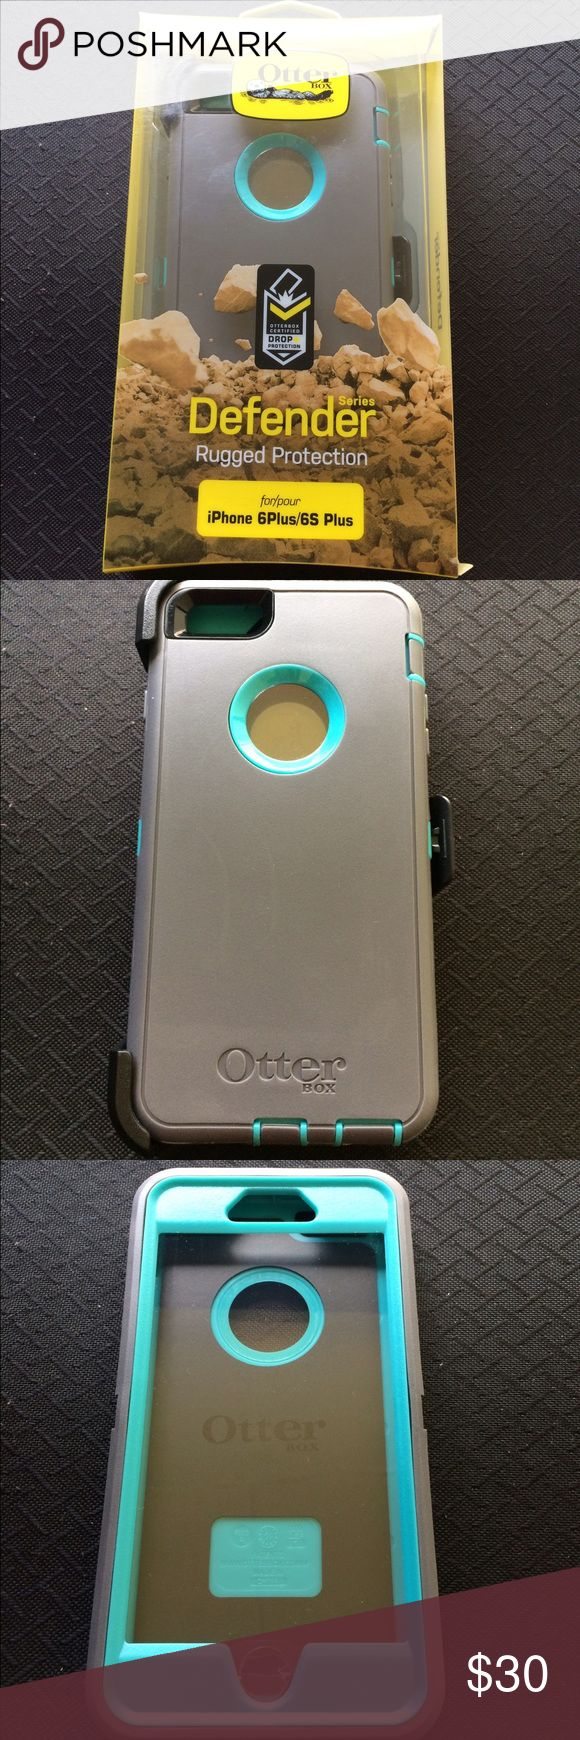 iPhone 6 Plus otterbox Defender Case Otter-box For 6 Plus & 6S Plus Yes I do Bundles! ✅ ✅Please read before buying ! ✅ Next Day Shipping !! ✅Only for iPhone 6 Plus & 6S Plus ✅comes with belt clip ✅comes with screen protector Customer service is my main goal, I am always willing to make my customer happy if a problem arises. Thank you. Otter Box Certified Drop+ Protection you can be sure your device is protected from the wear and tear of everyday use. OtterBox Accessories